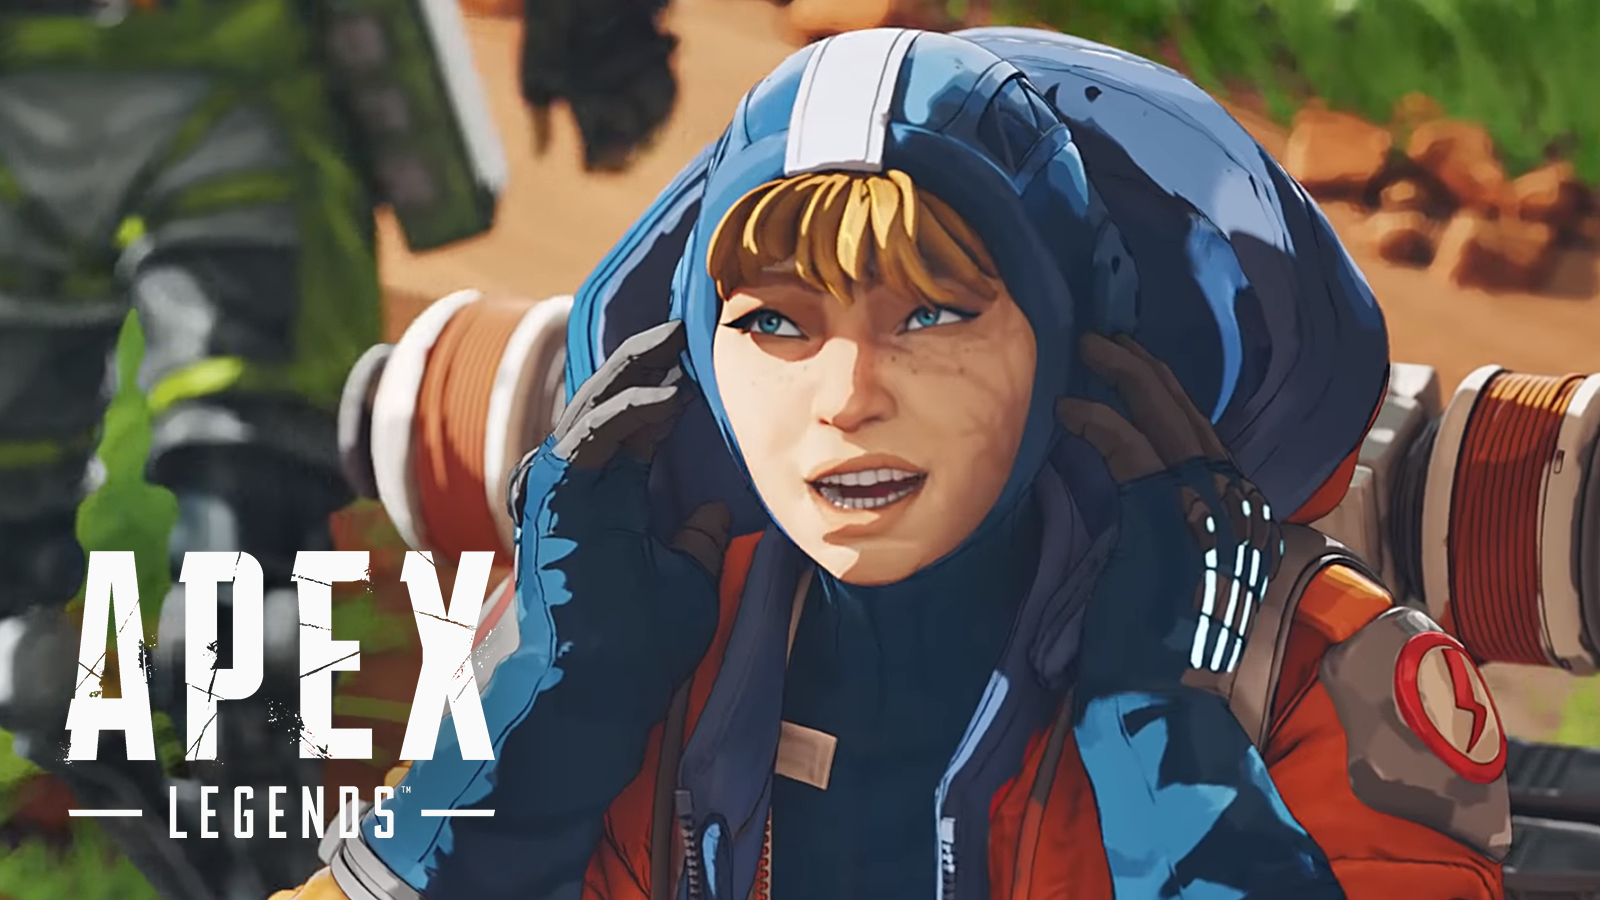 Wattson covers her ears next to Apex Legends logo.